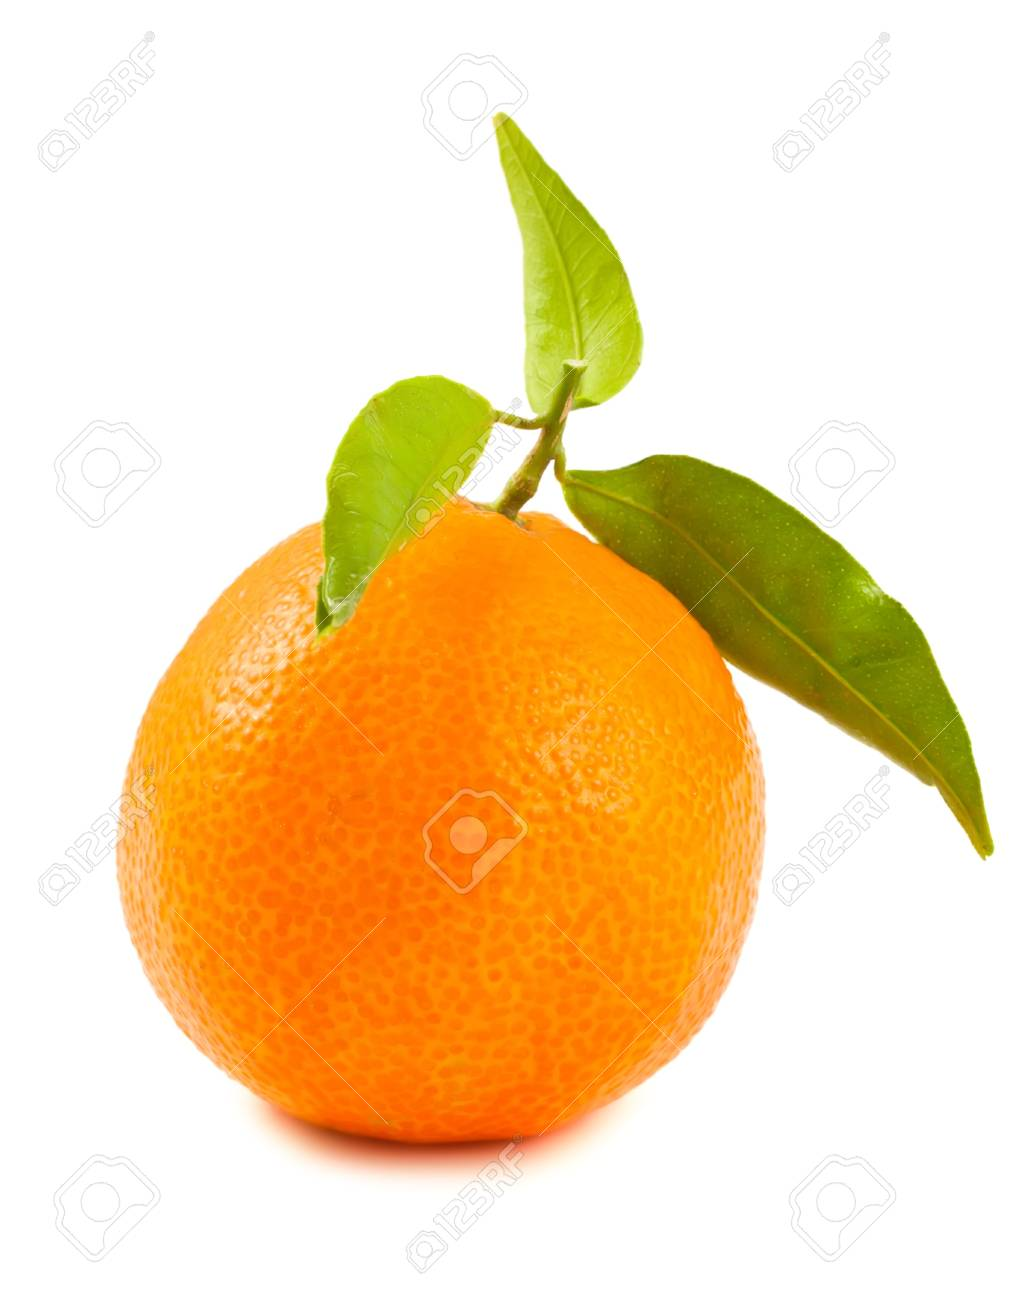 Ripe tangerine isolated on a white background Stock Photo - 11270724